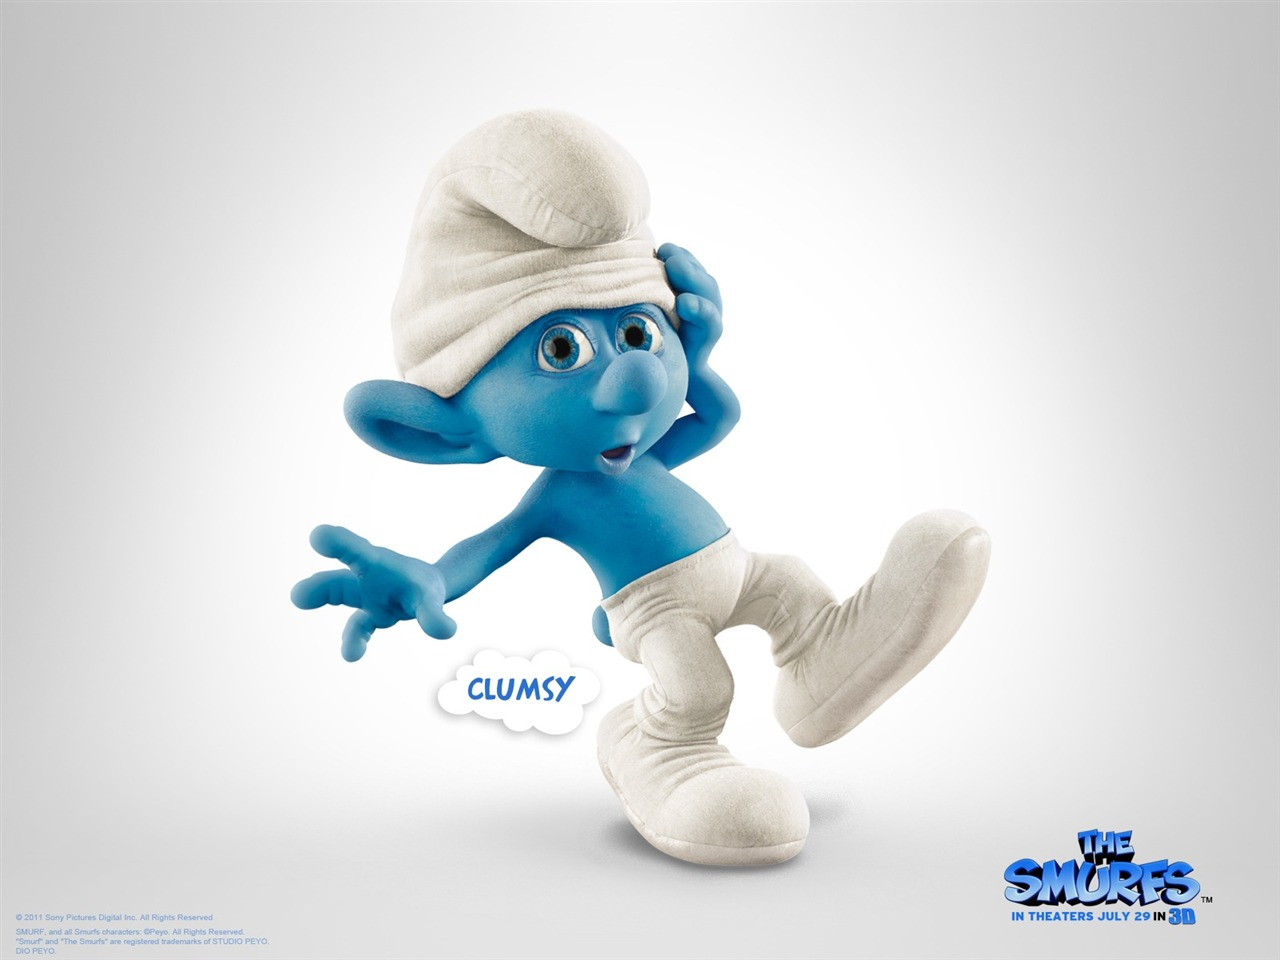 Smurf Clumsy Wallpaper